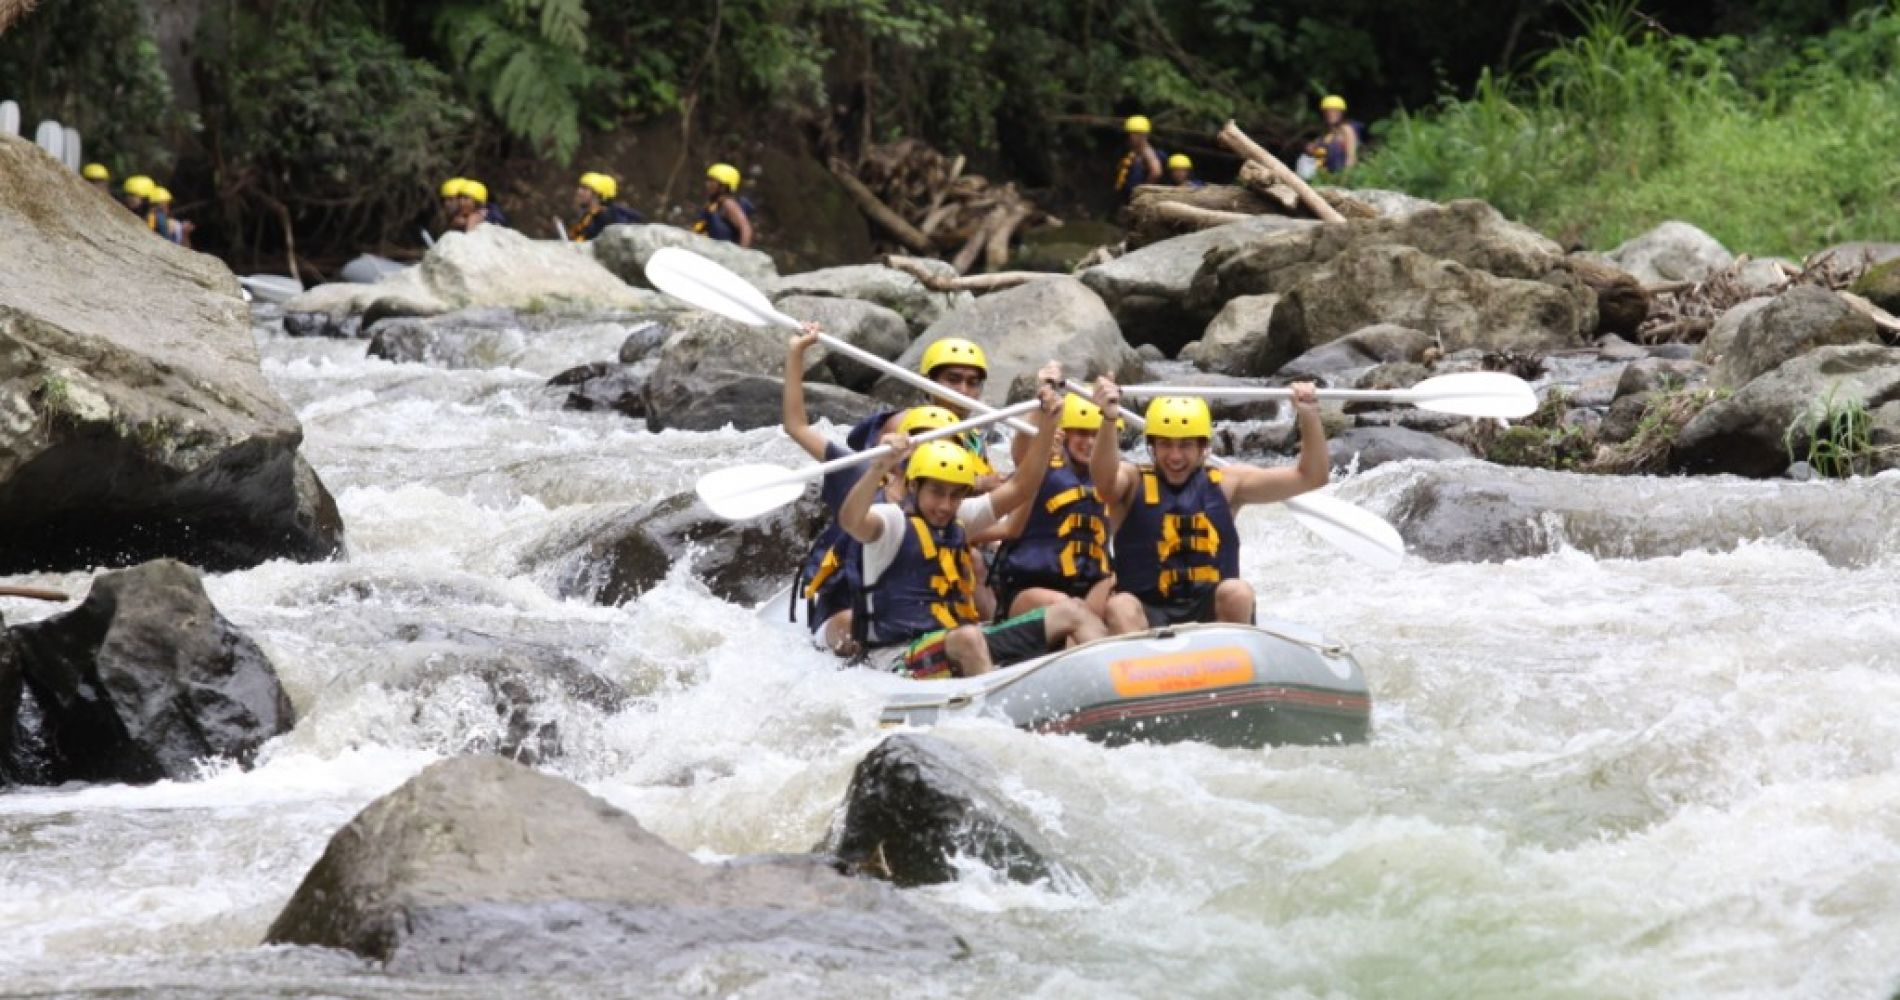 Extreme White Water Rafting Indonesia Tinggly Experience Gifts